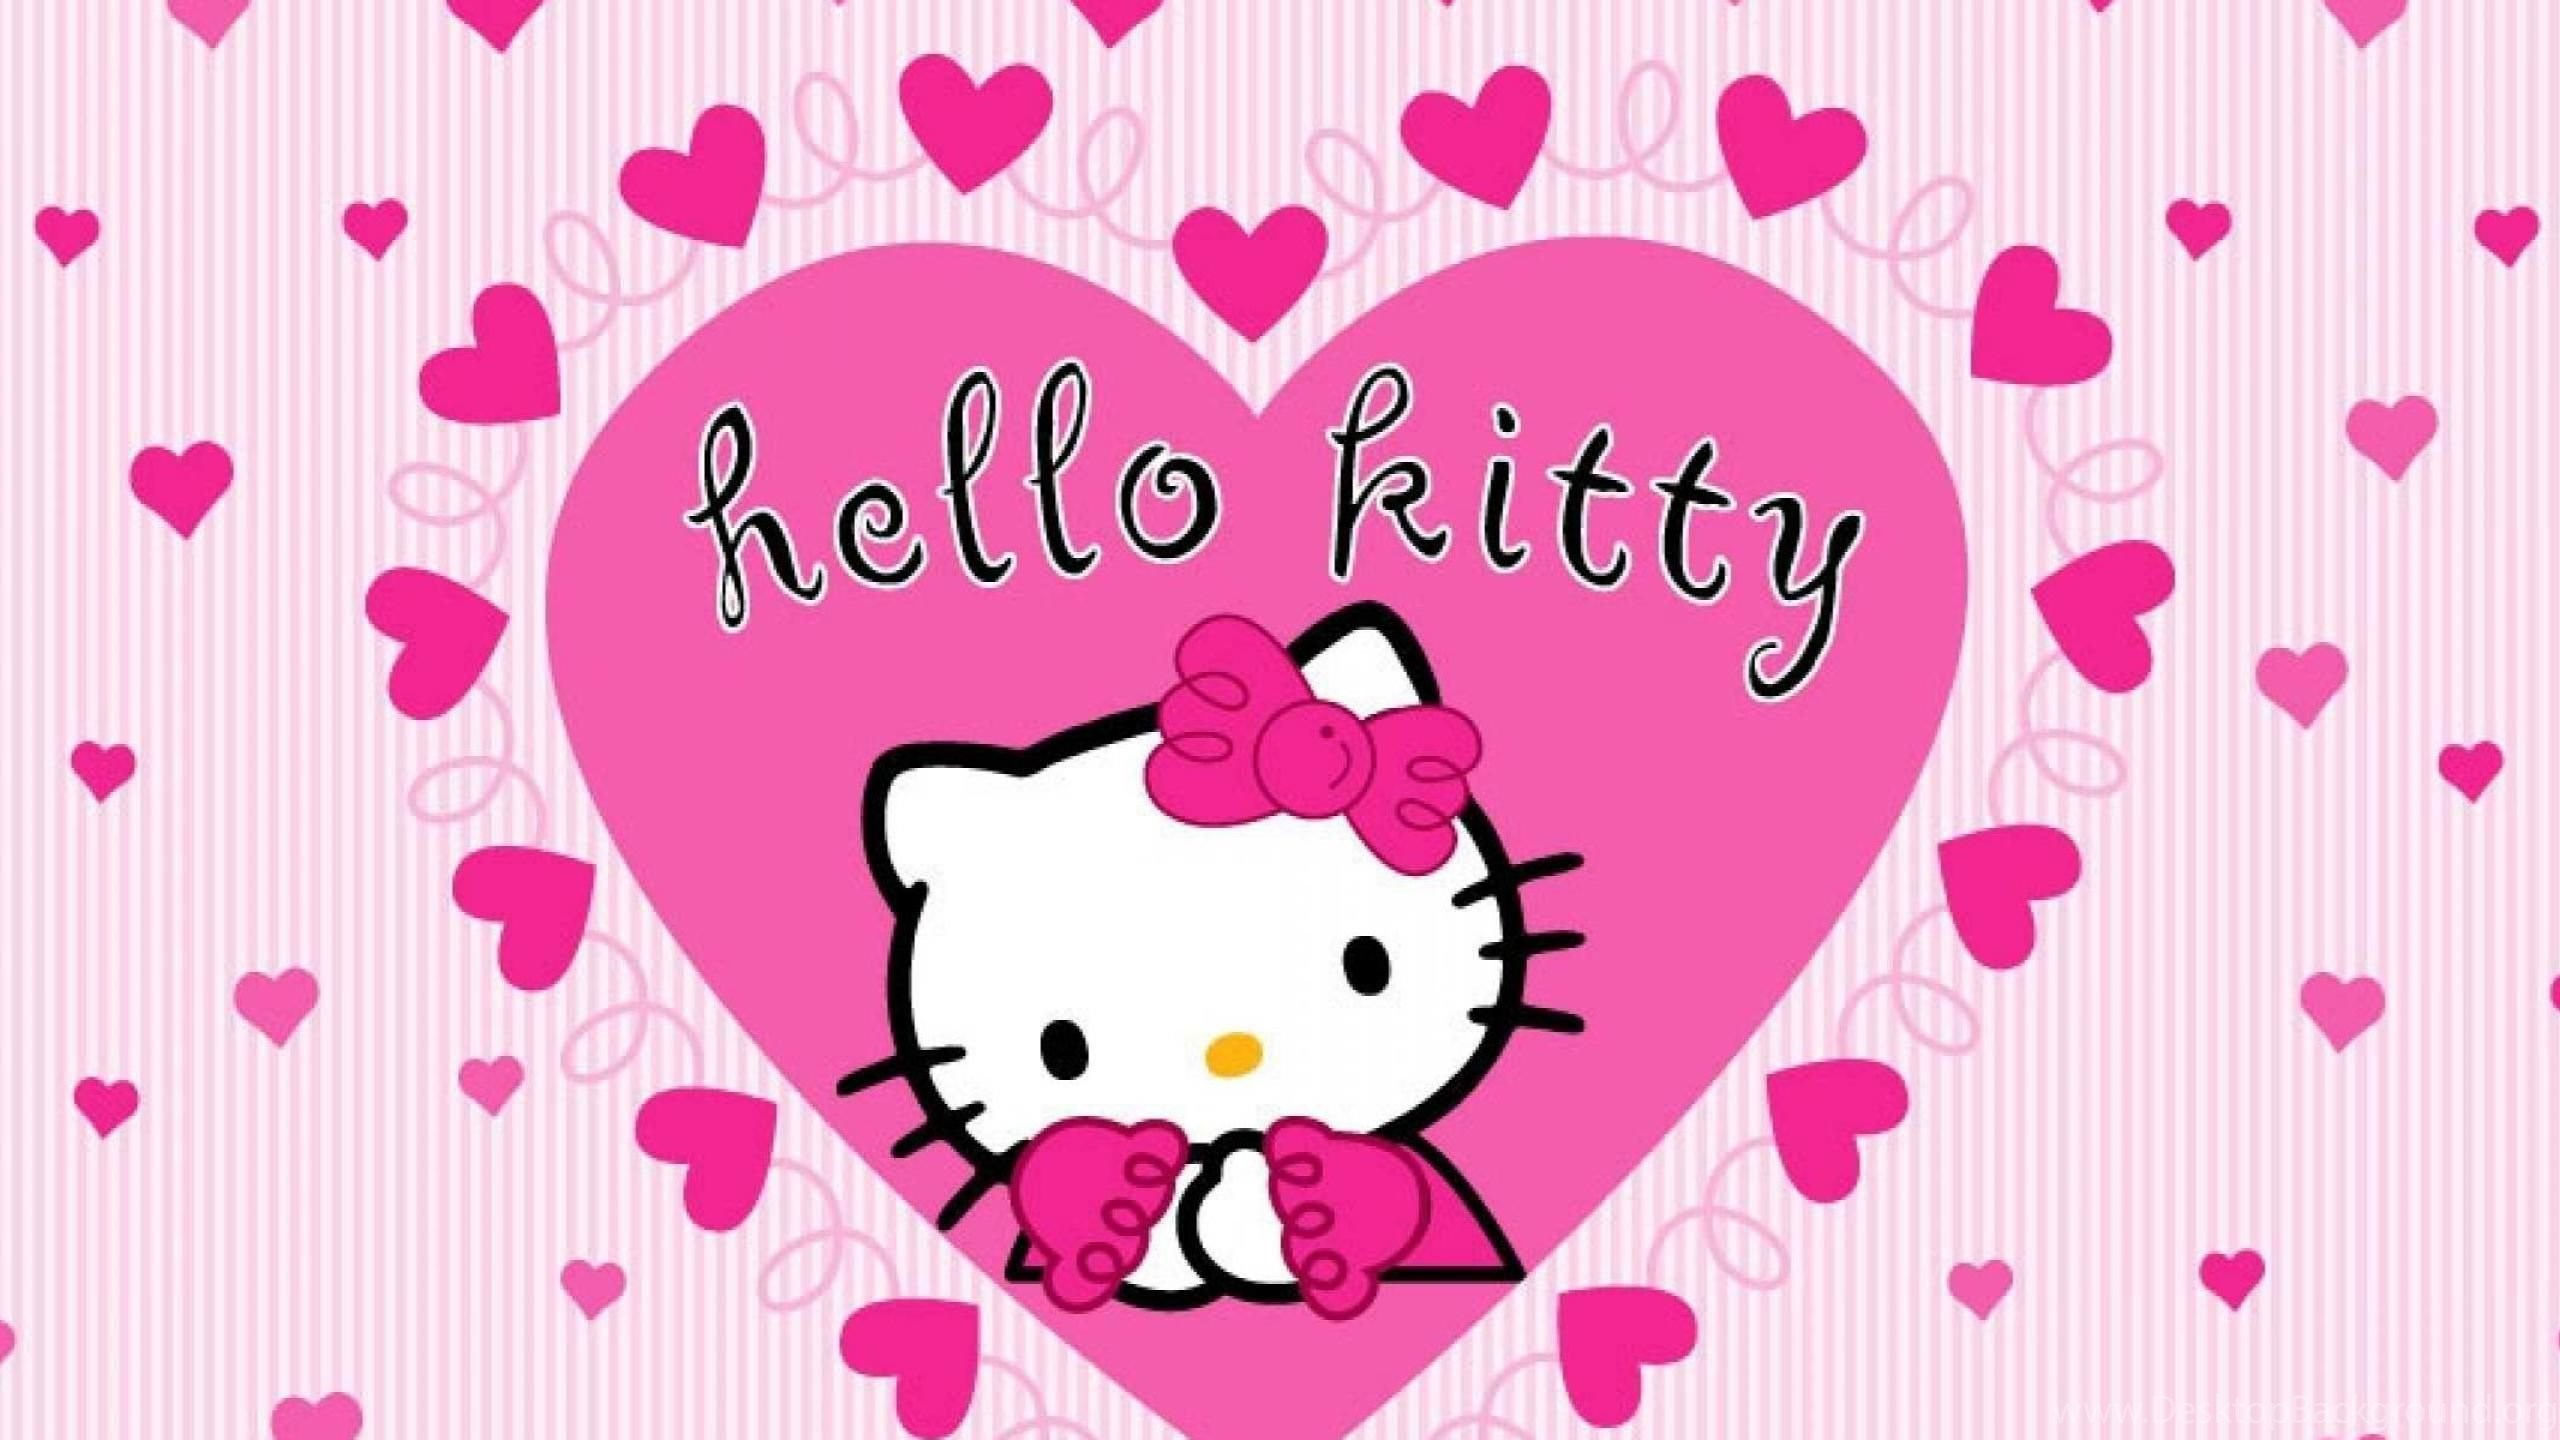 Cool Wallpaper Hello Kitty Note 4 - 446849_picture-of-hello-kitty-wallpapers-original-picture-and-name-for_2560x1920_h  Photograph_968312.jpg